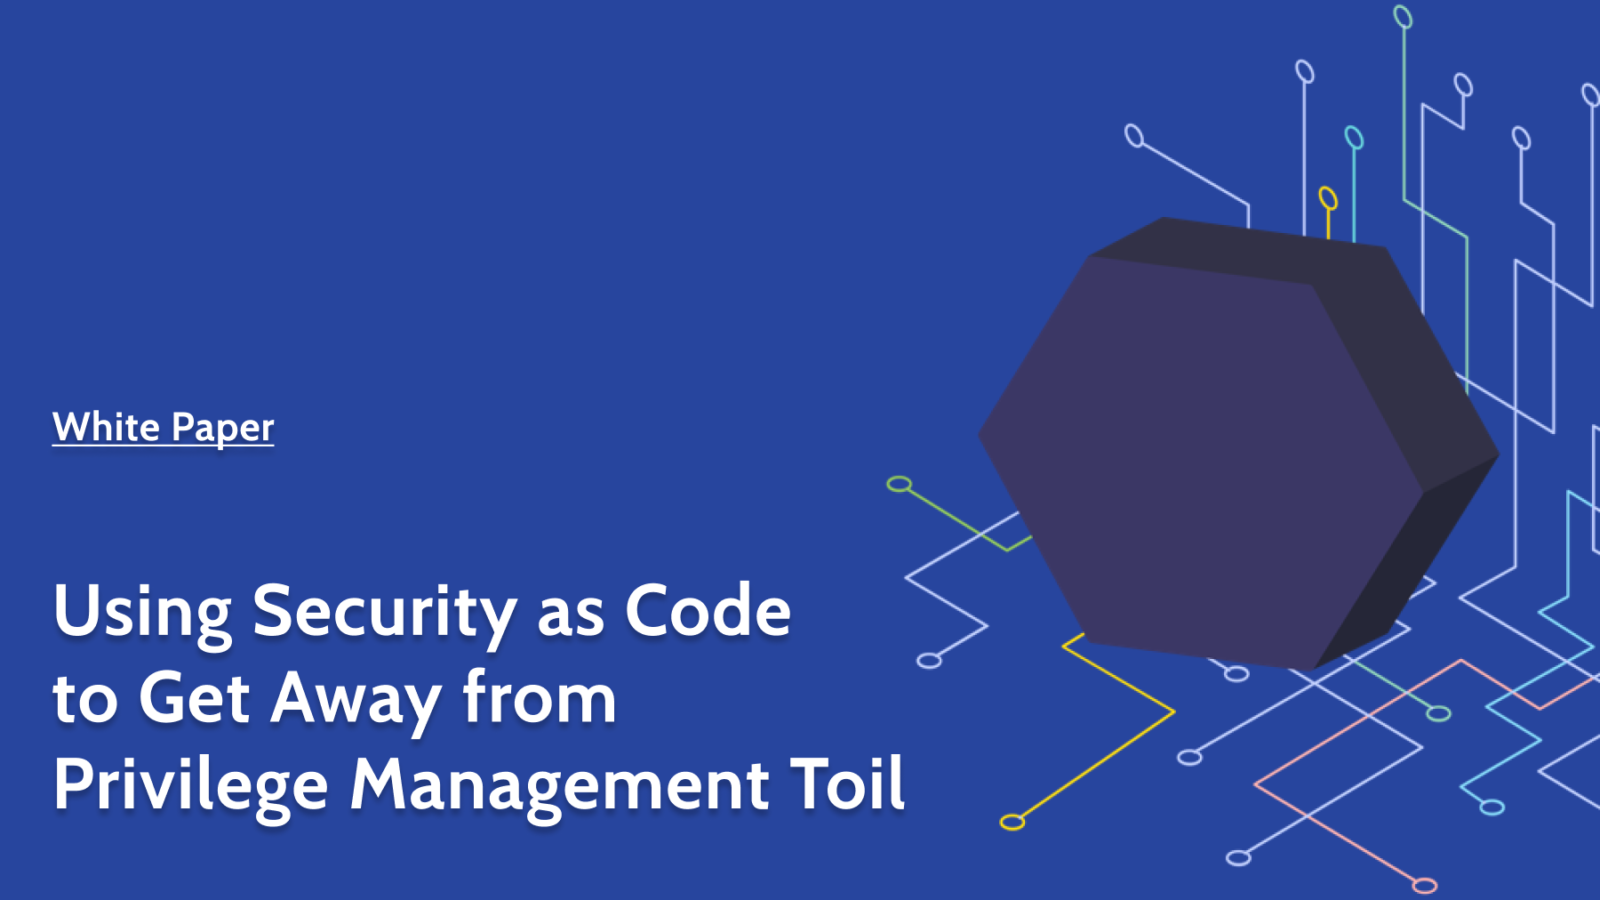 Using Security as Code to get away from privilege management toil